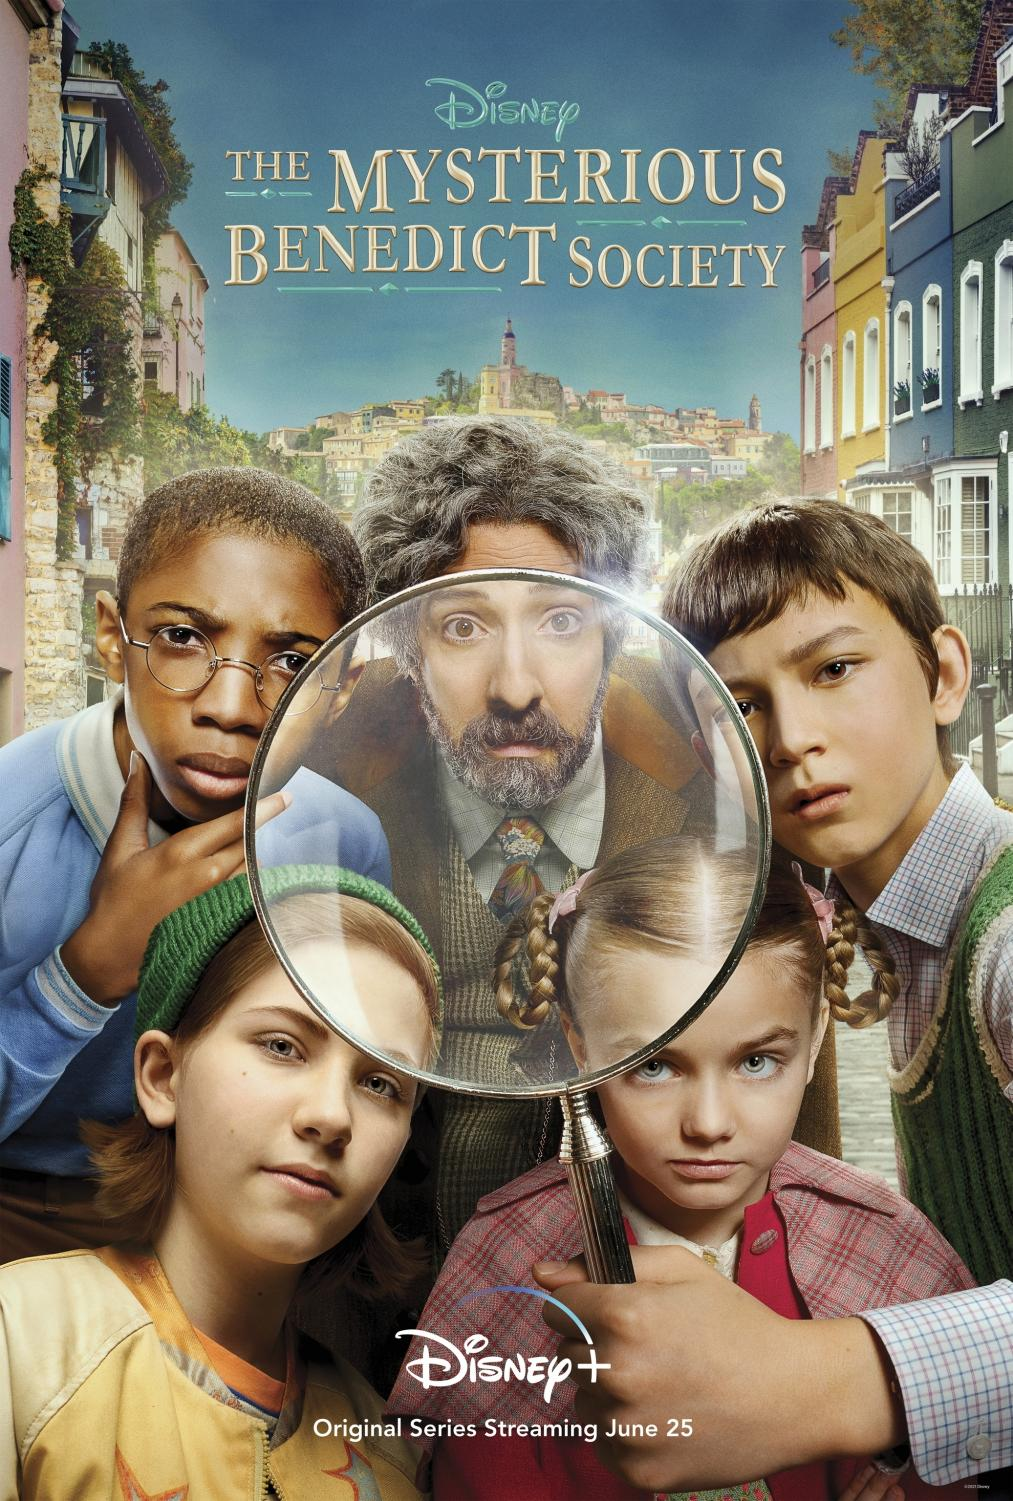 The Mysterious Benedict Society: The Best of Disney+